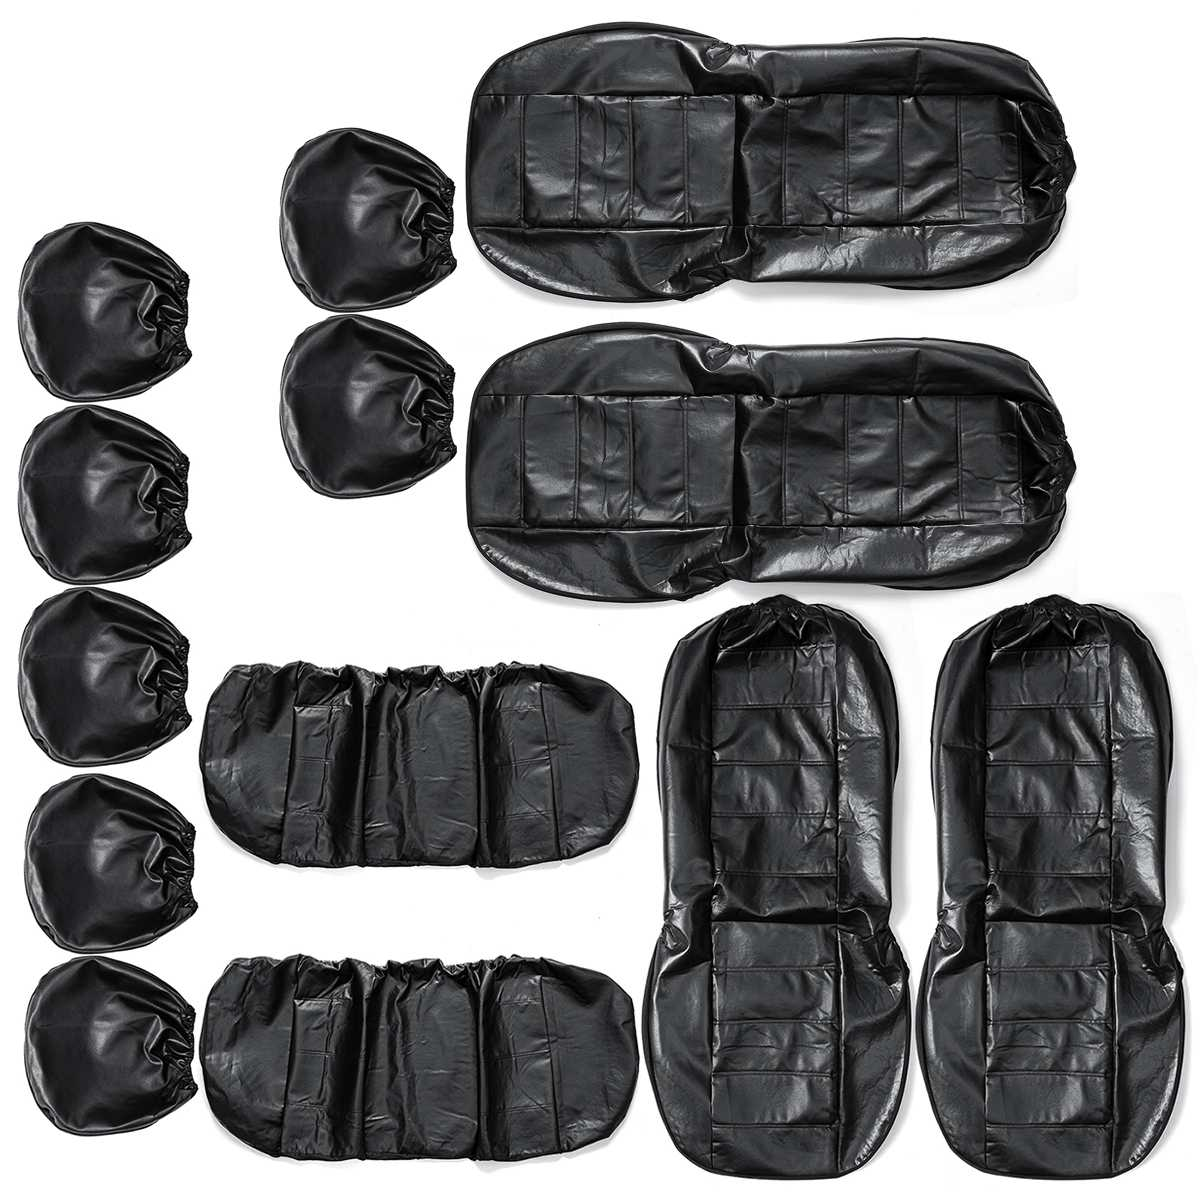 4/9 Sets PU Leather Car Seat Cover Wear-resistant Soft Breathable Wear-resistant Four Seasons Universals Car Seat Cover Black